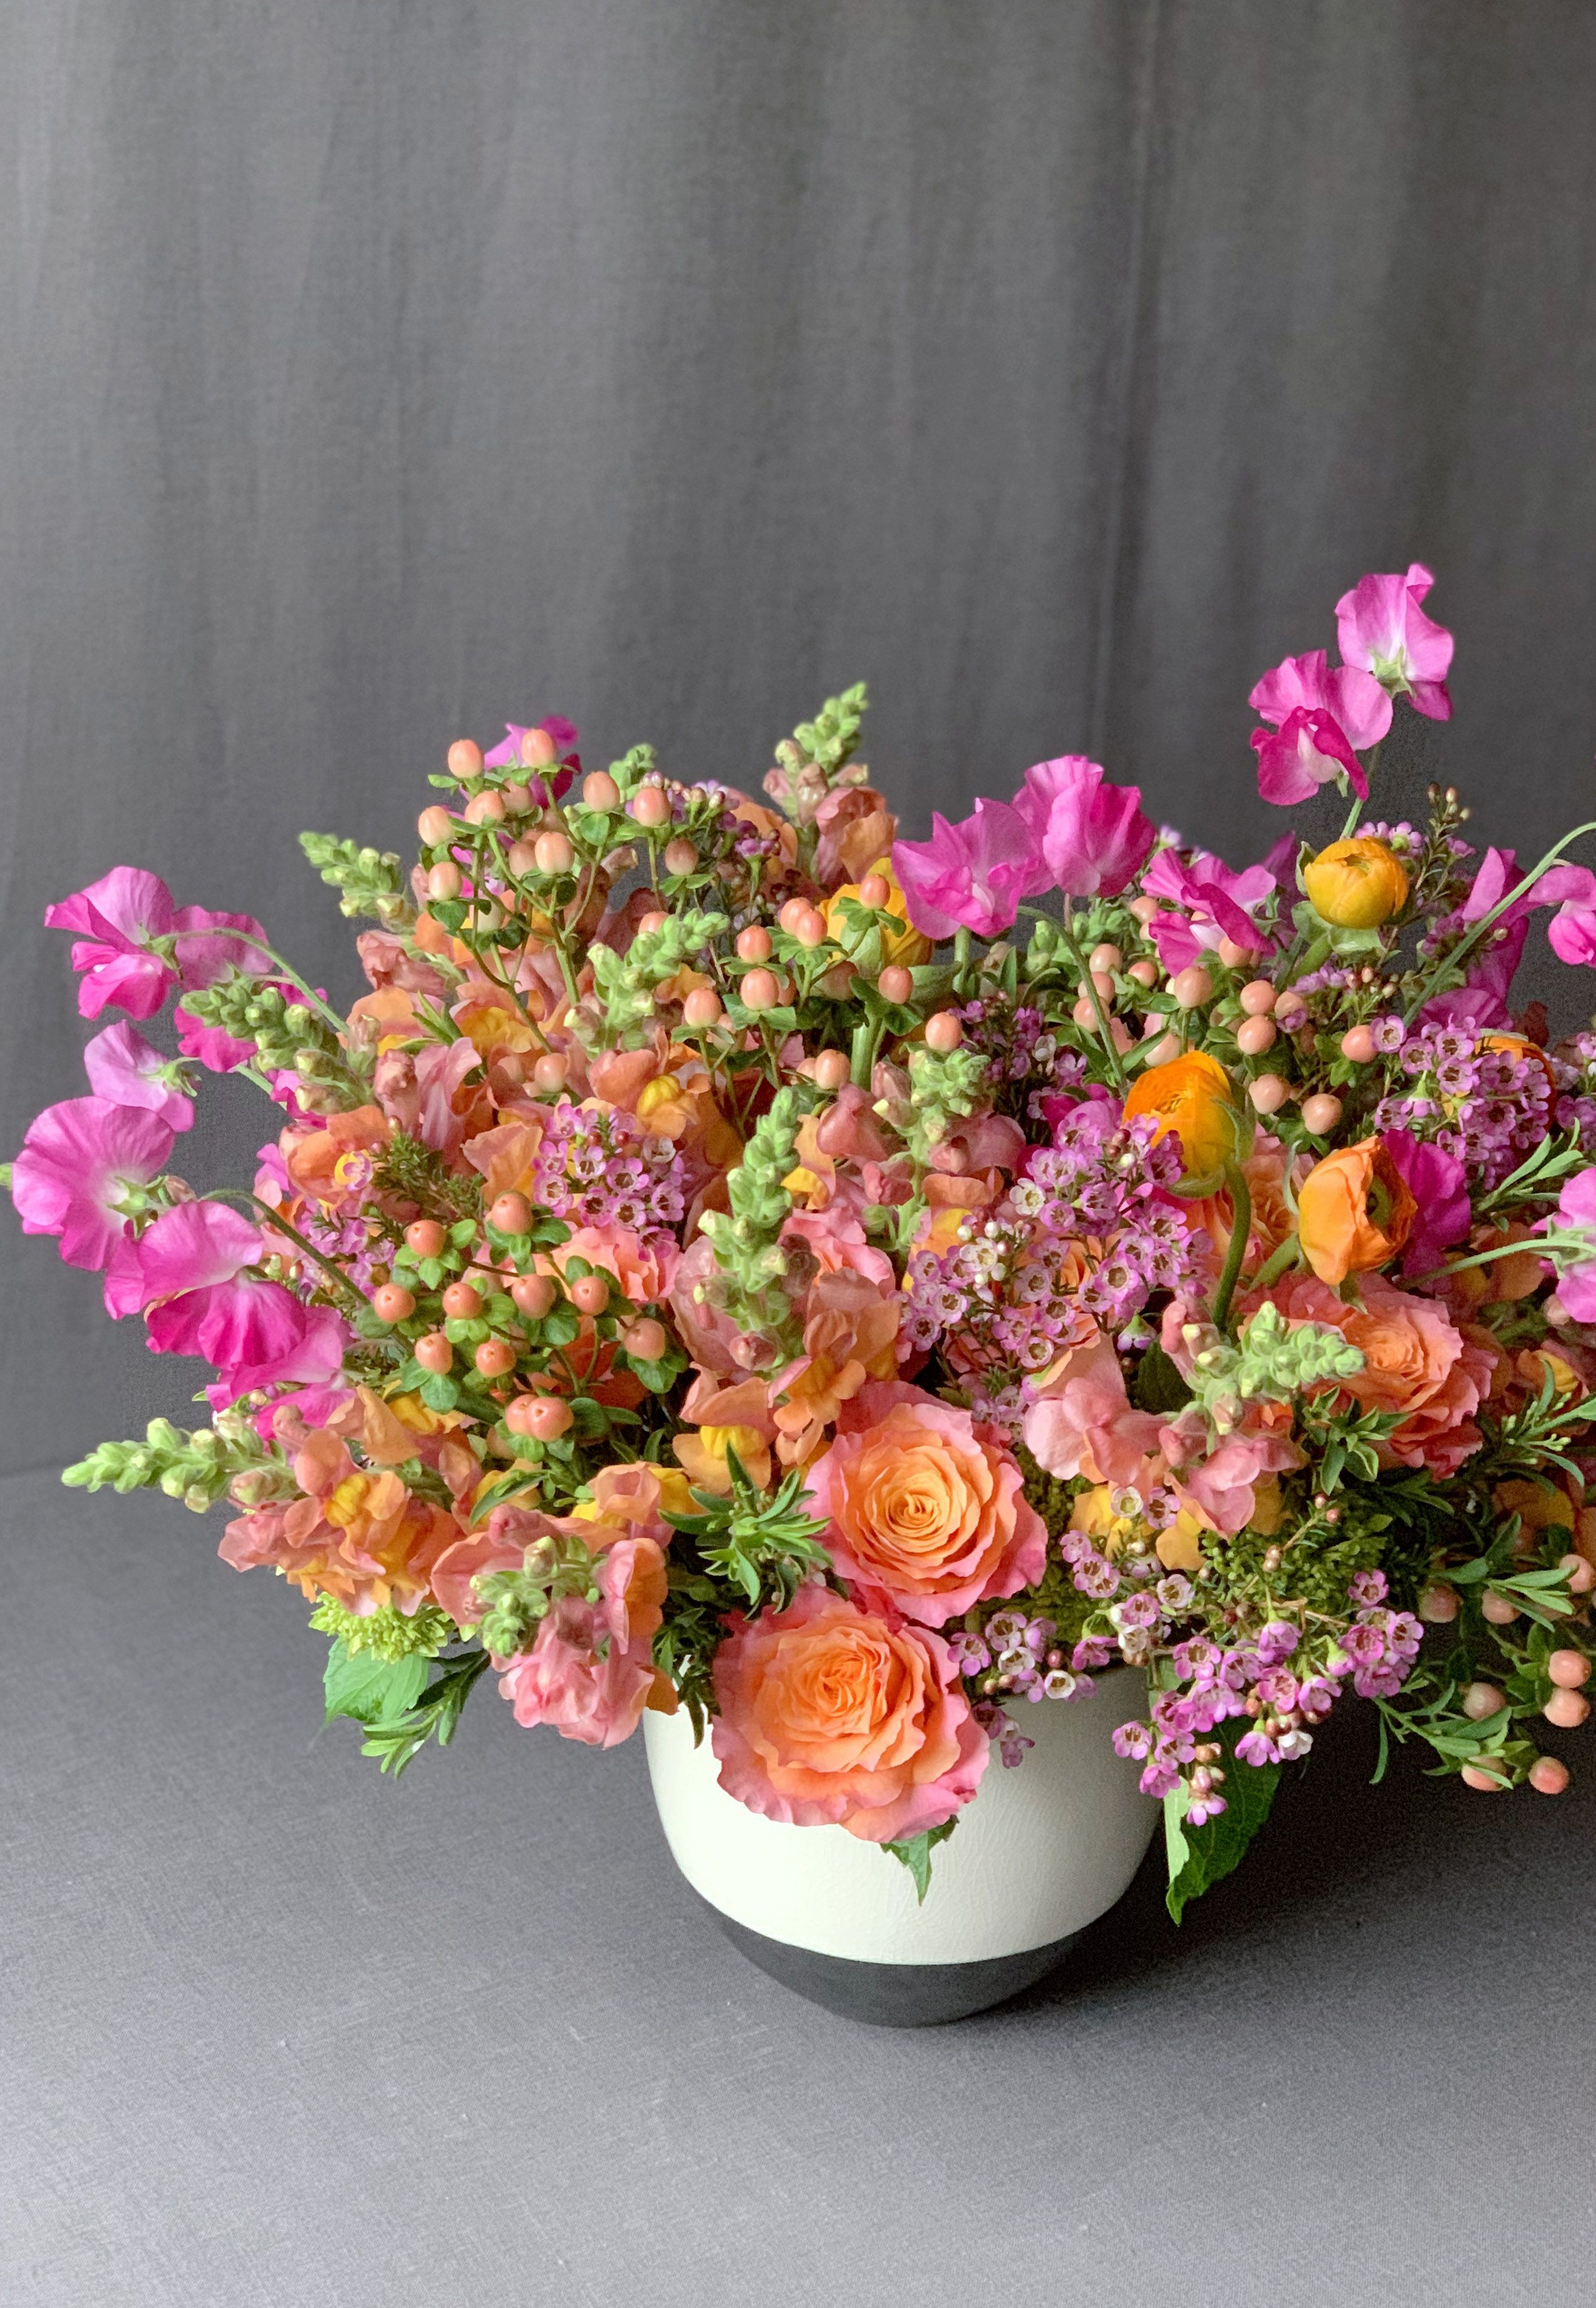 Bright Colorful Flowers in 2020 Pretty flowers, Flowers